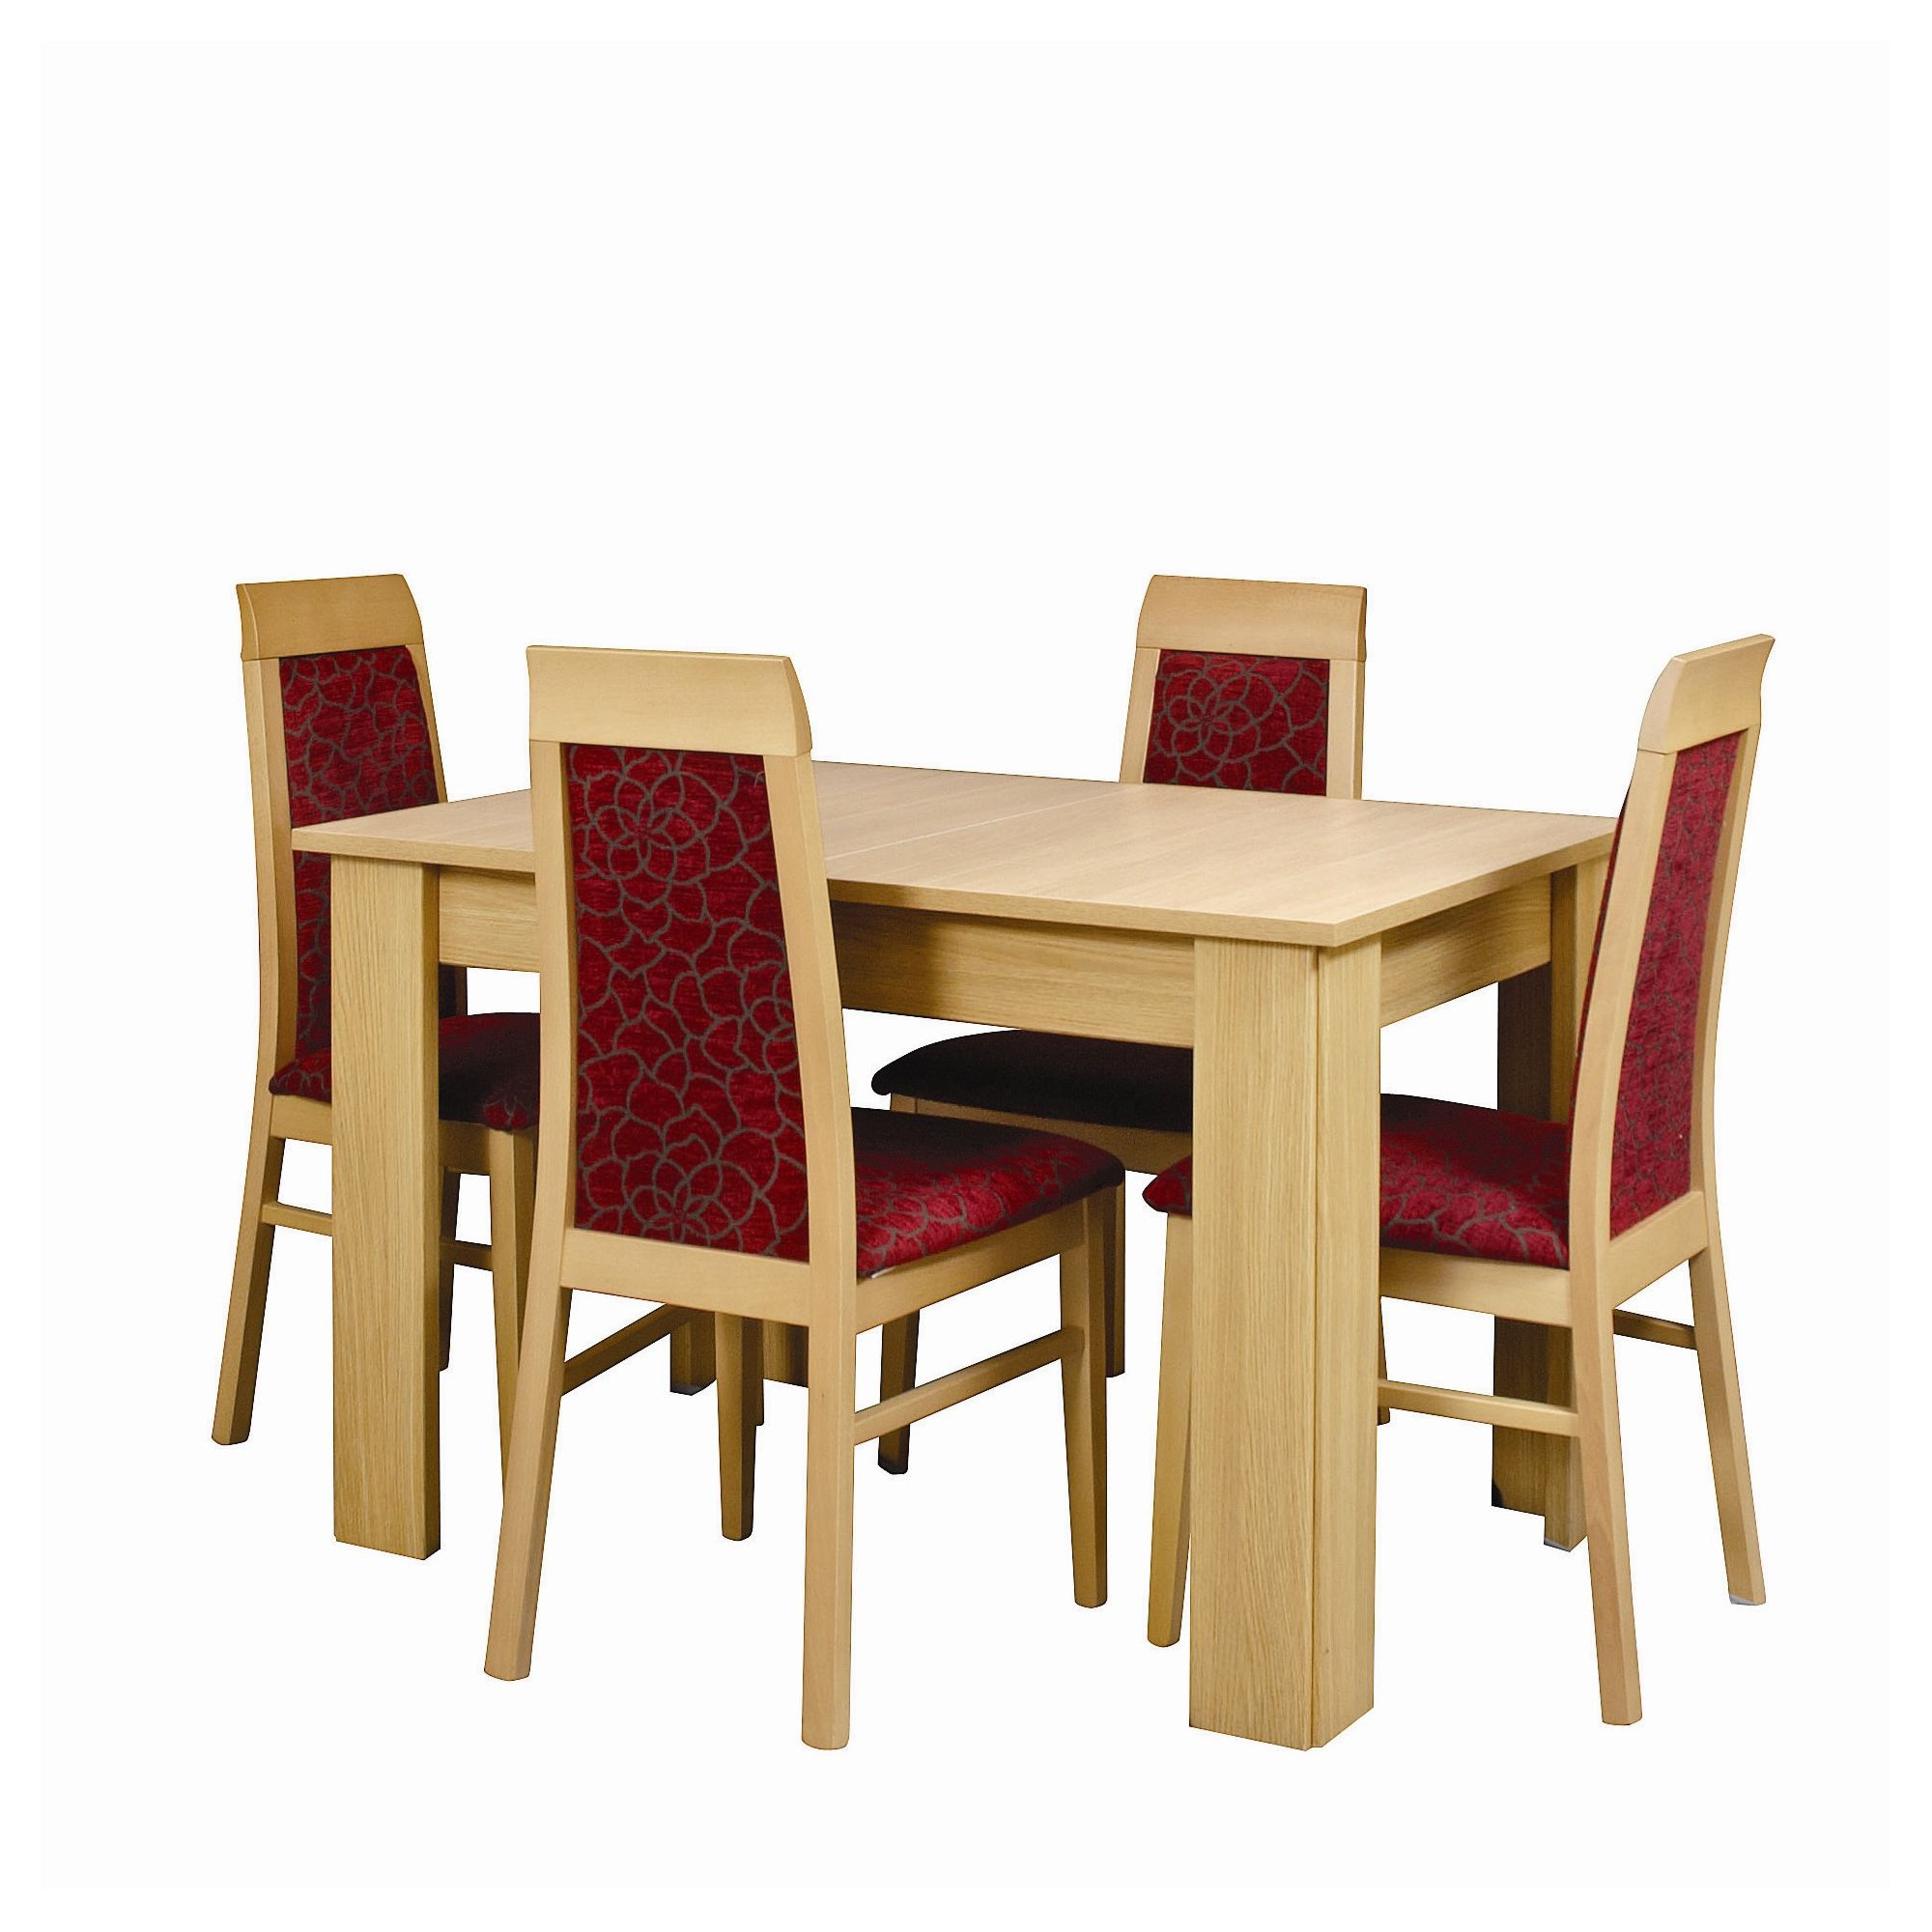 Other Caxton Huxley Dining Table Set with 4 Upholstered Dining Chairs in Light Oak